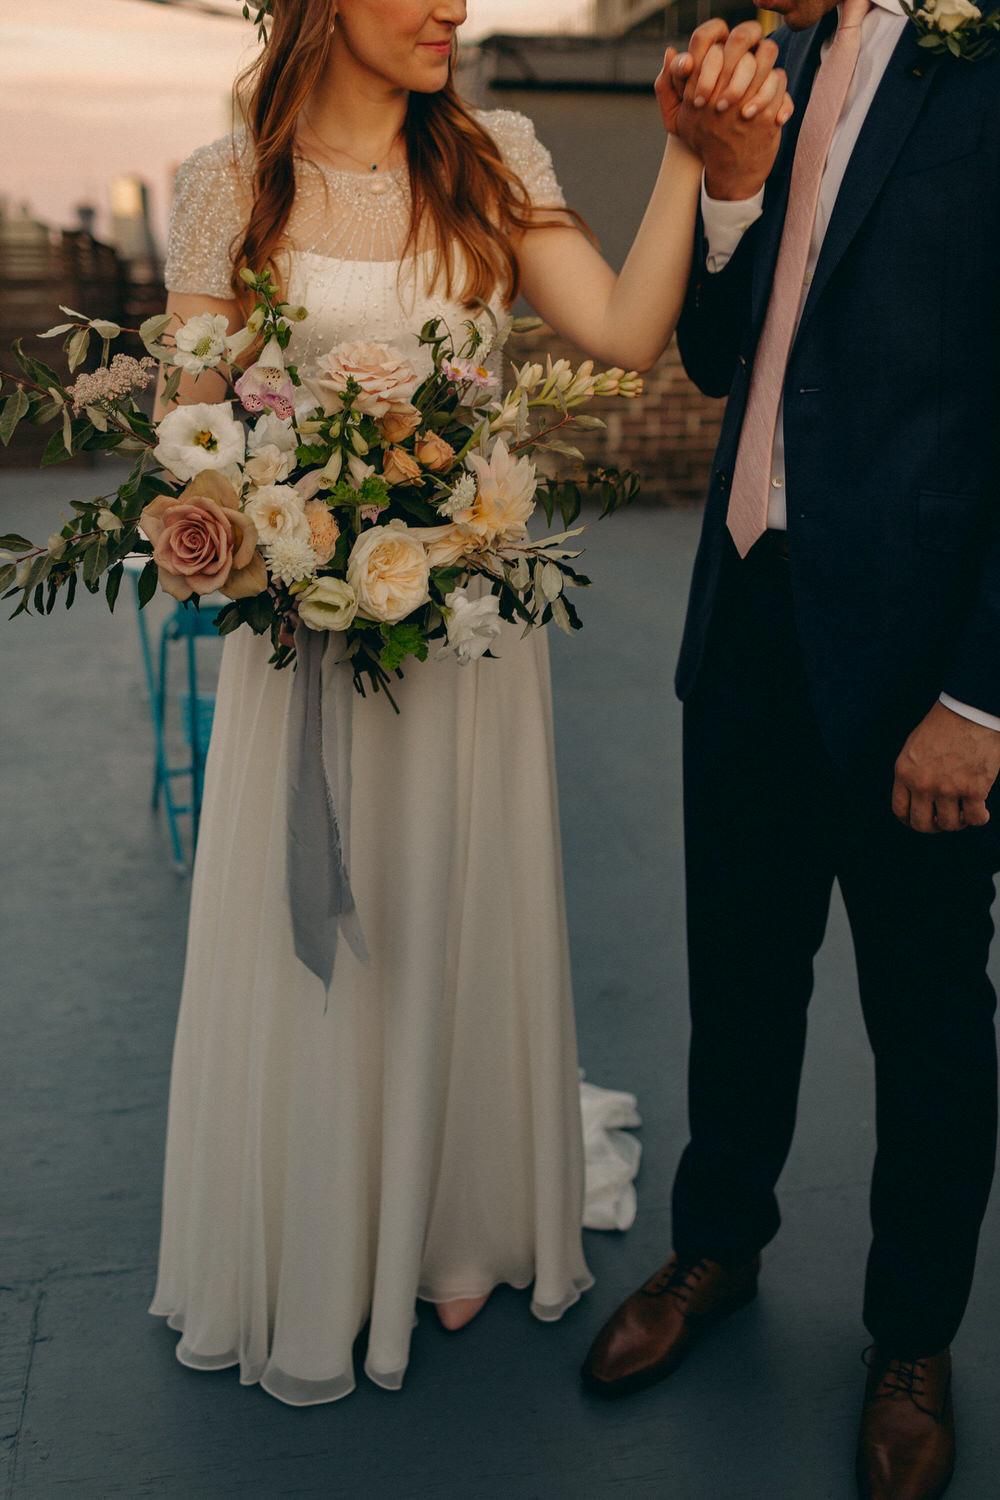 burroughes-building-wedding-toronto-christine-lim-photography-blush-and-bowties-064